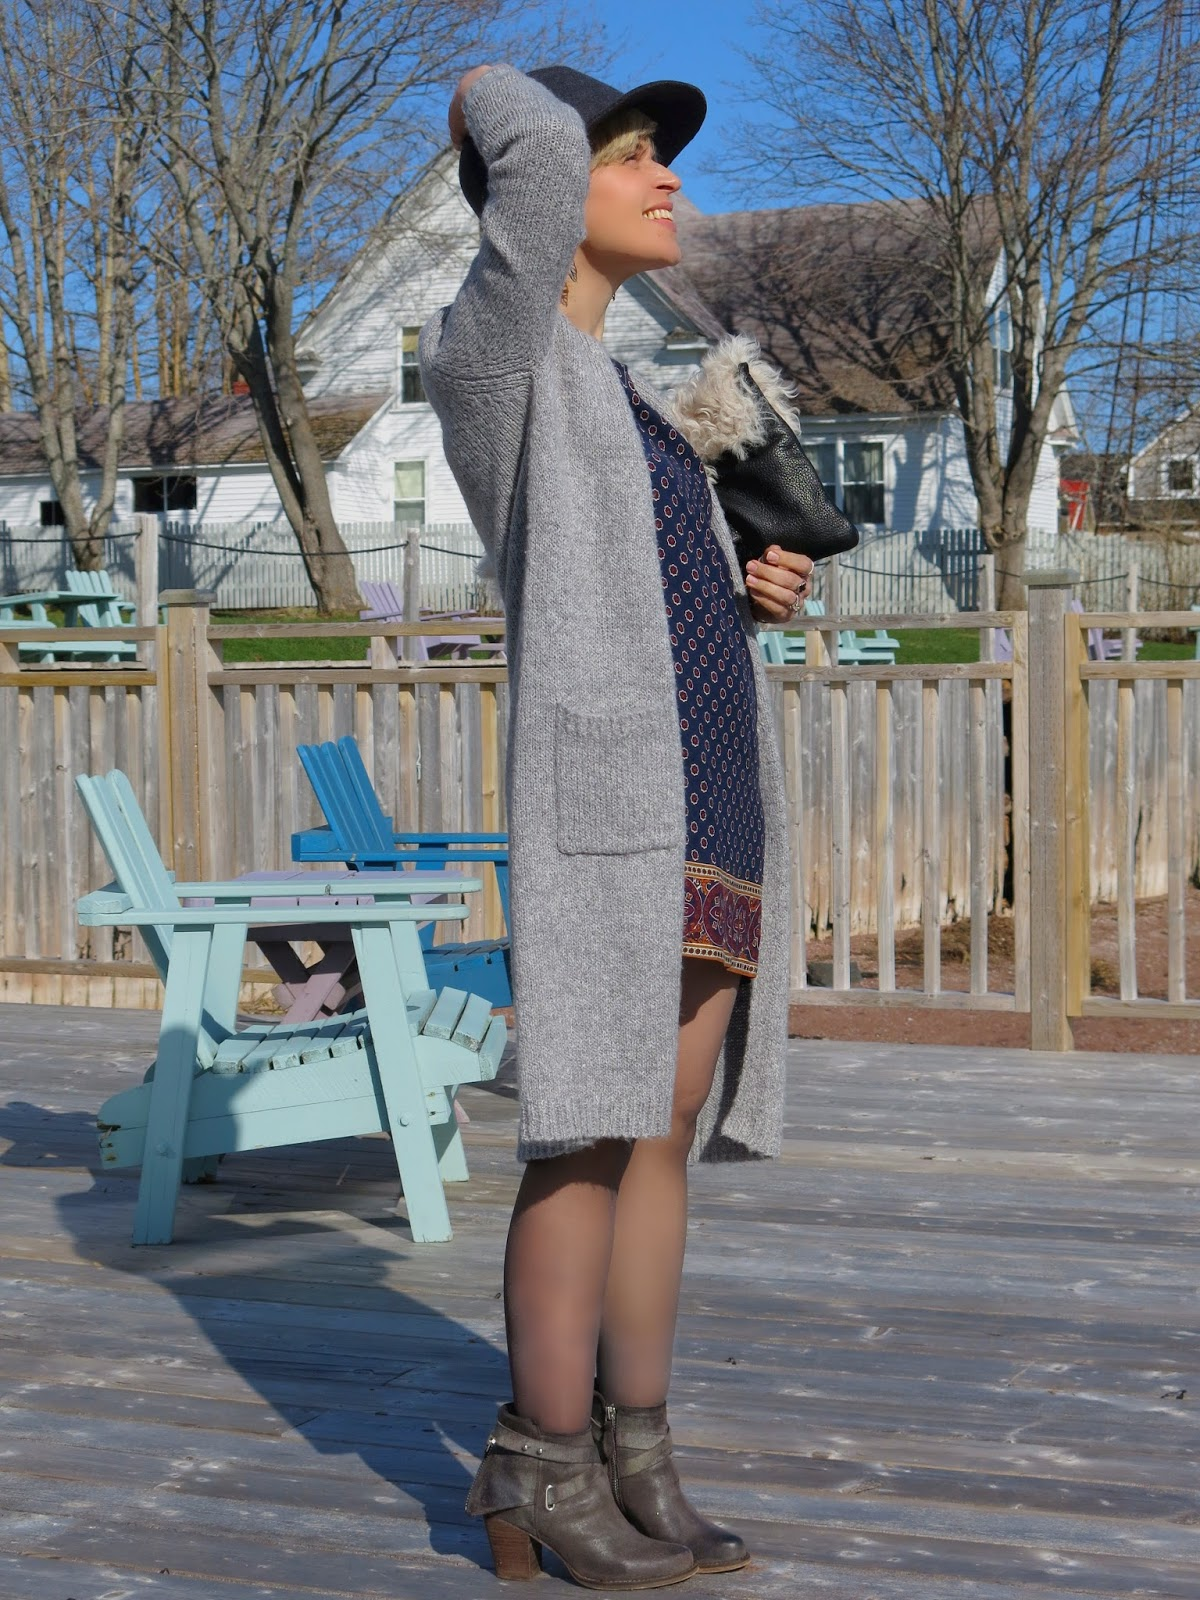 styling a printed mini-dress with a long cardigan, booties and a floppy hat